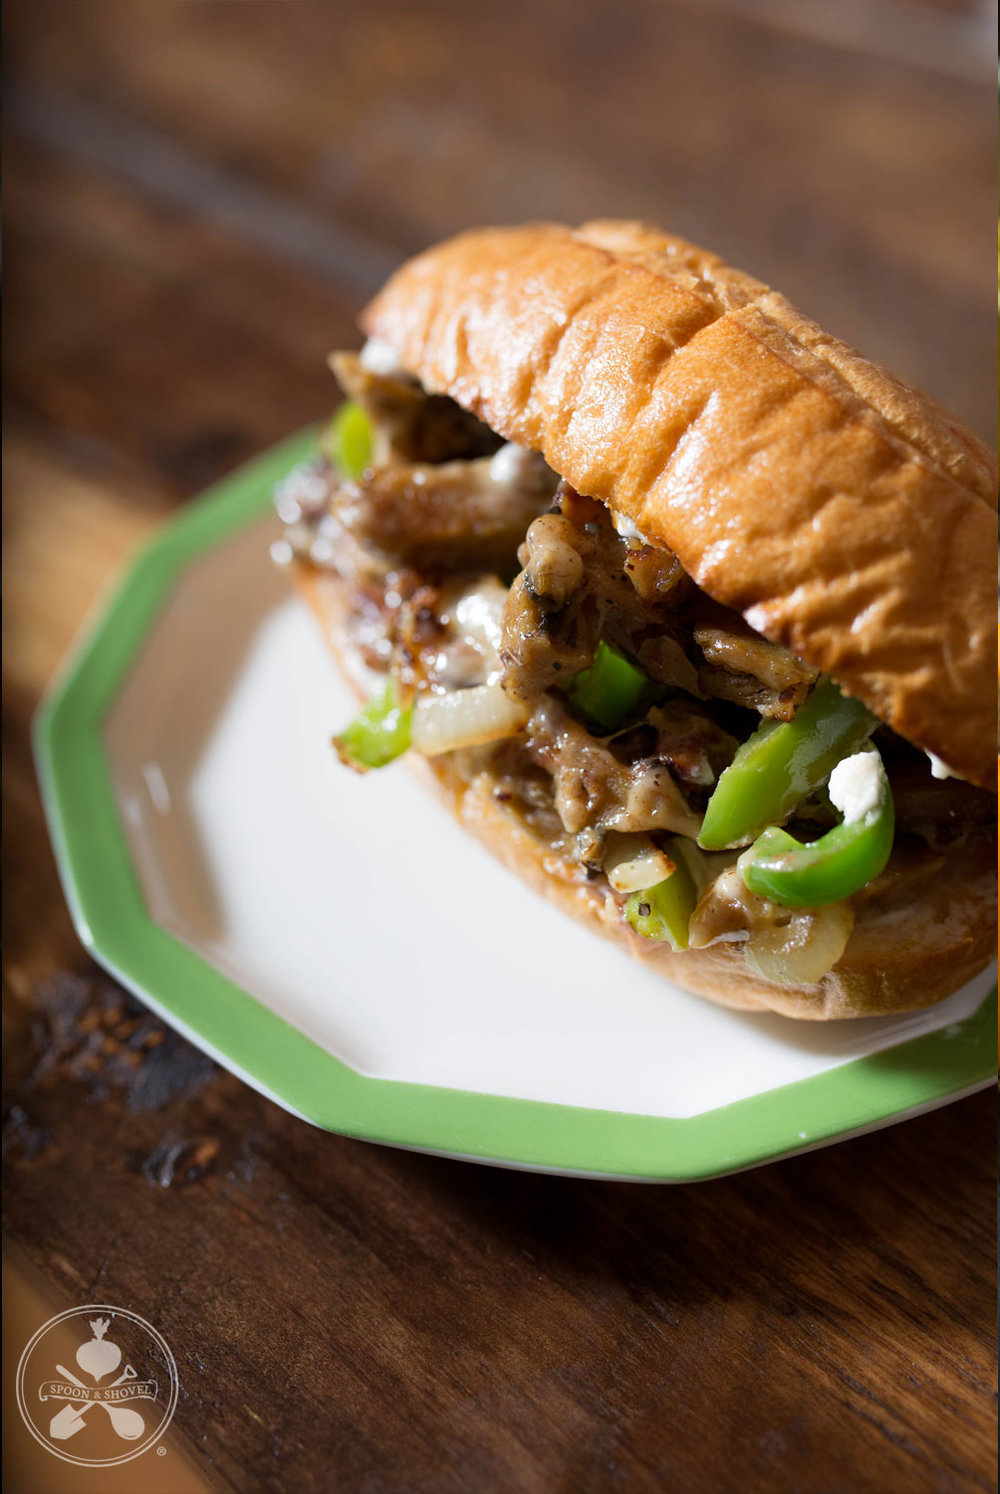 Vegan Philly Cheesesteak from The Spoon + Shovel